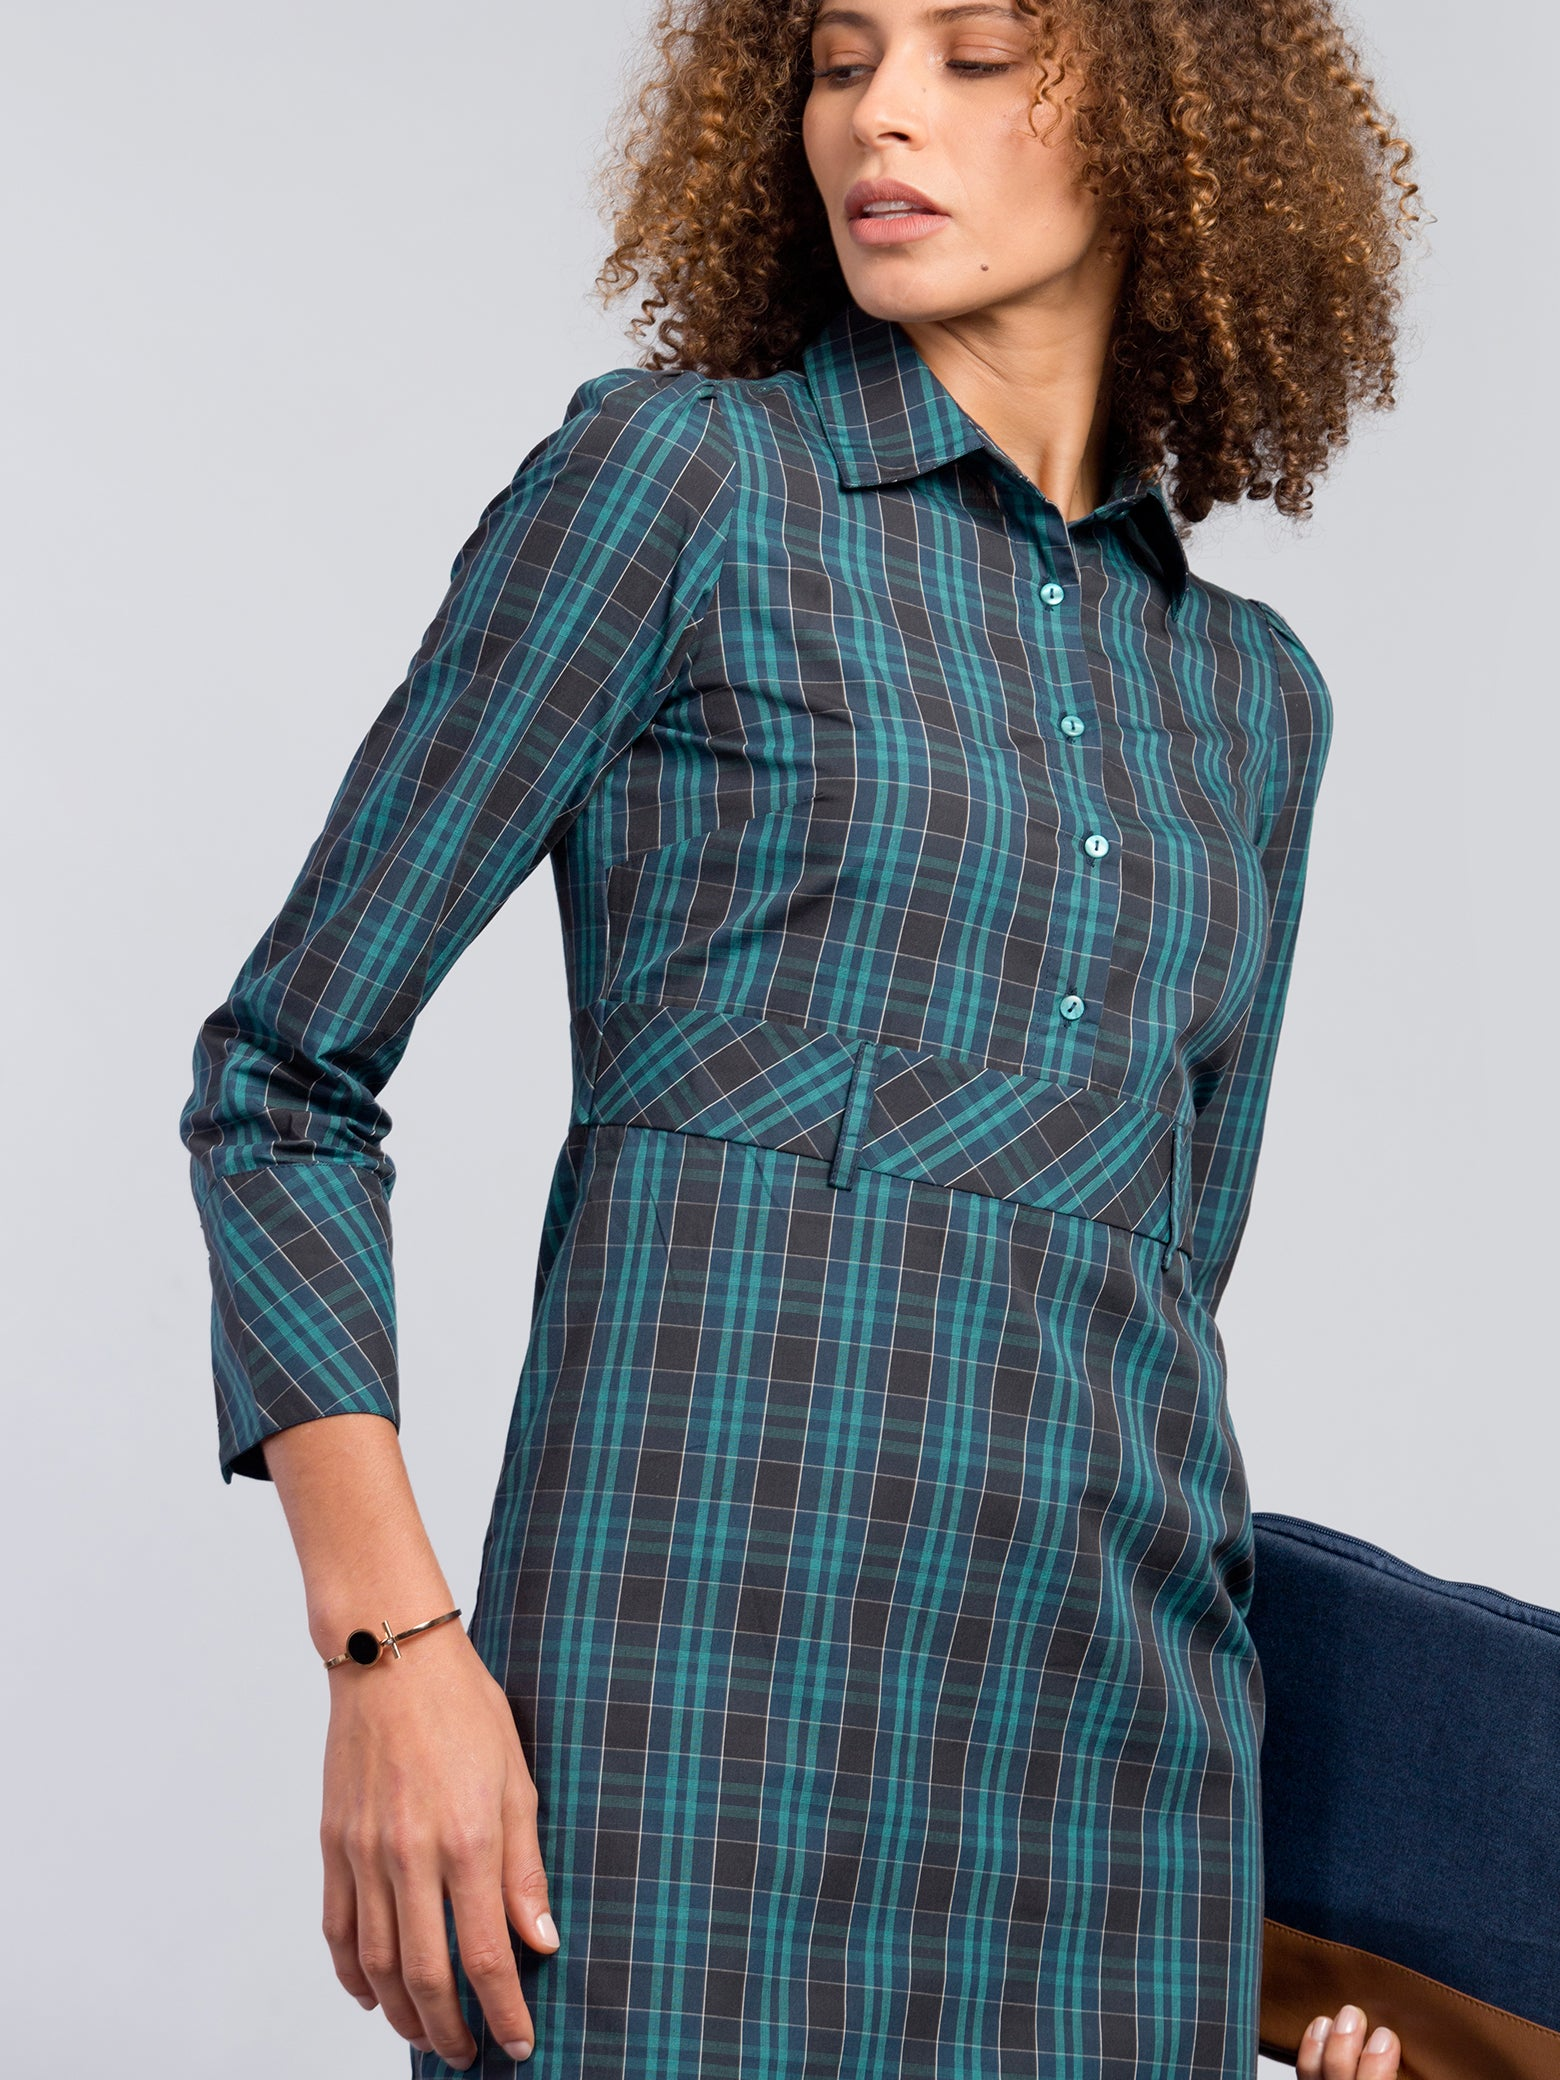 Plaid Below Knee Button Dress - Blue and Green